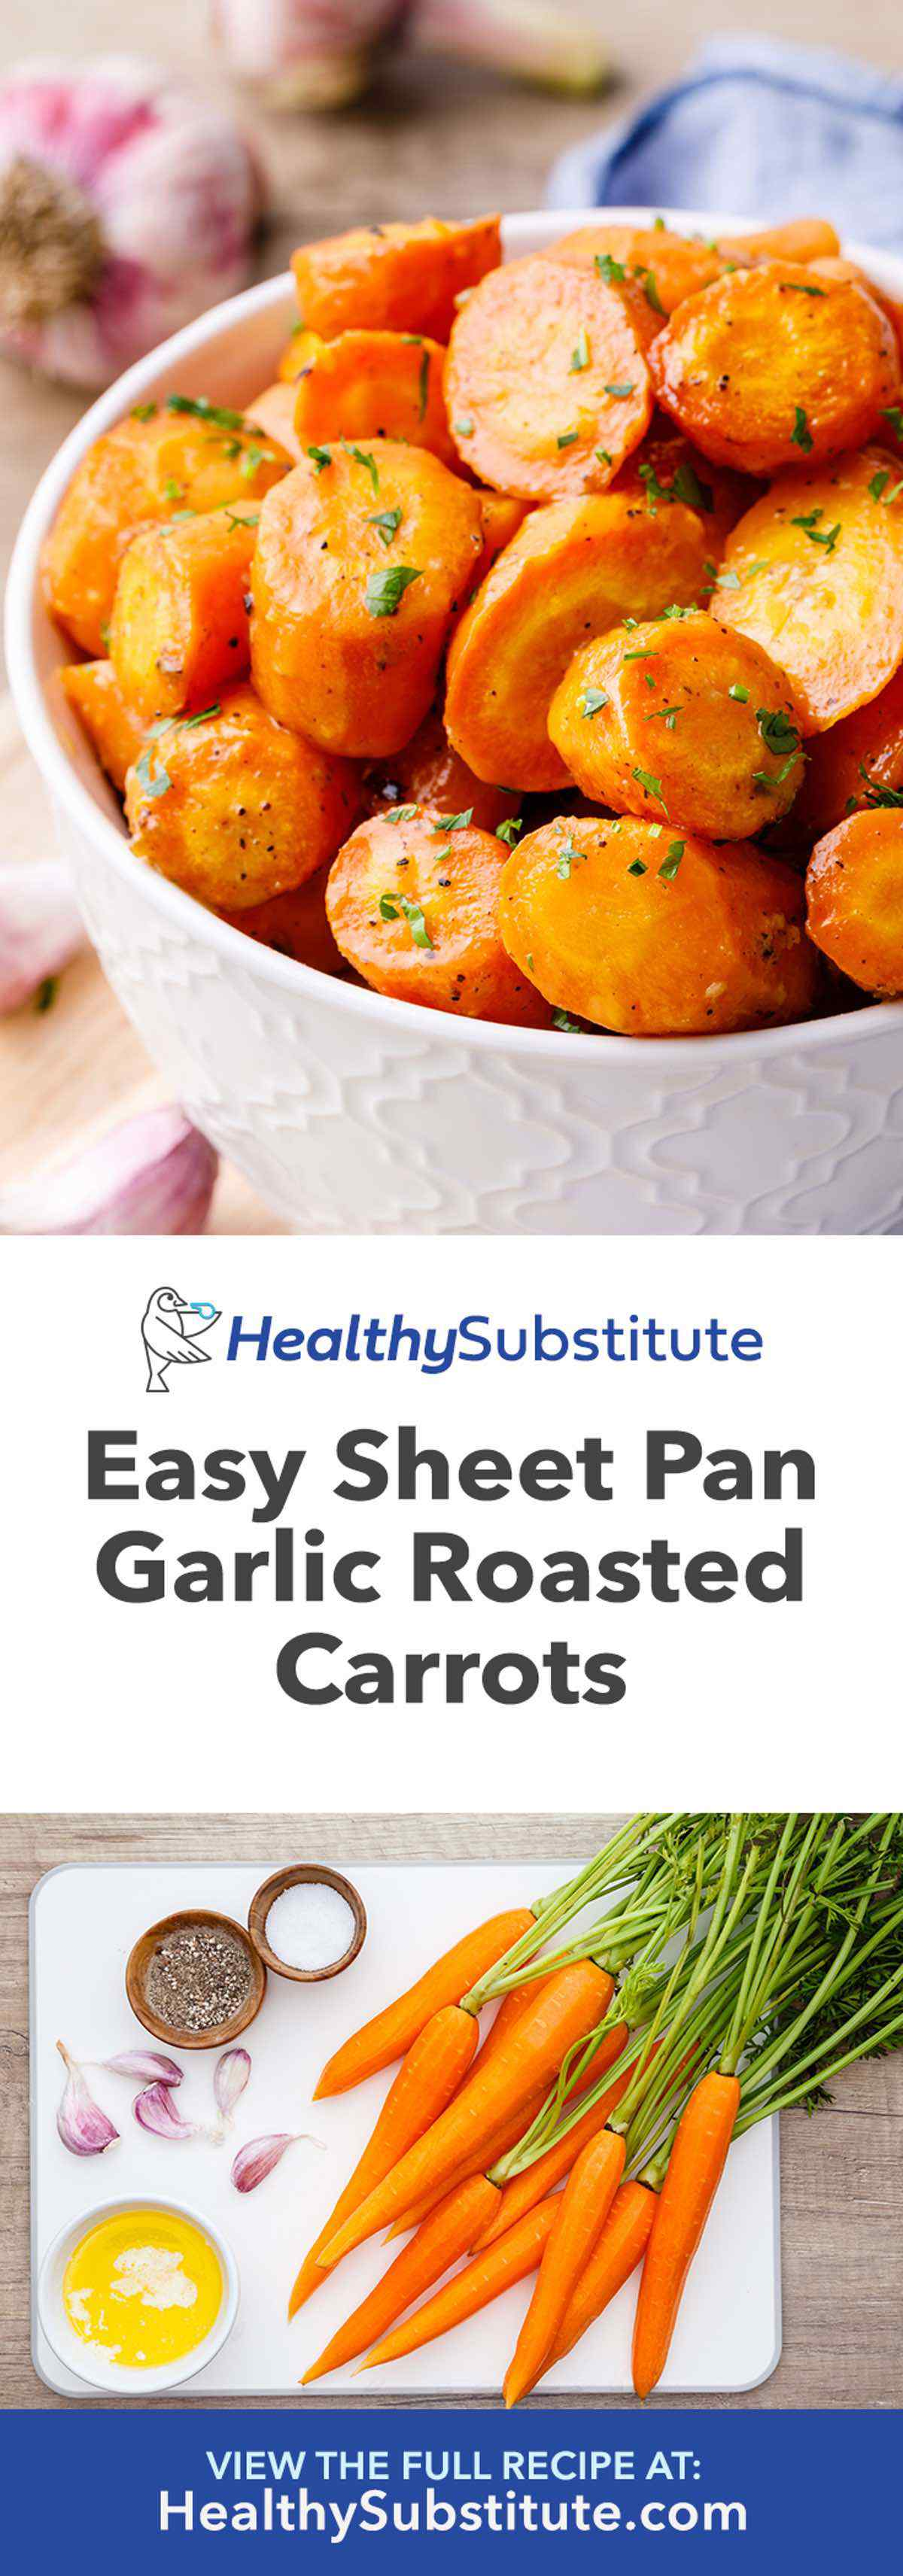 Easy Sheet Pan Garlic Roasted Carrots